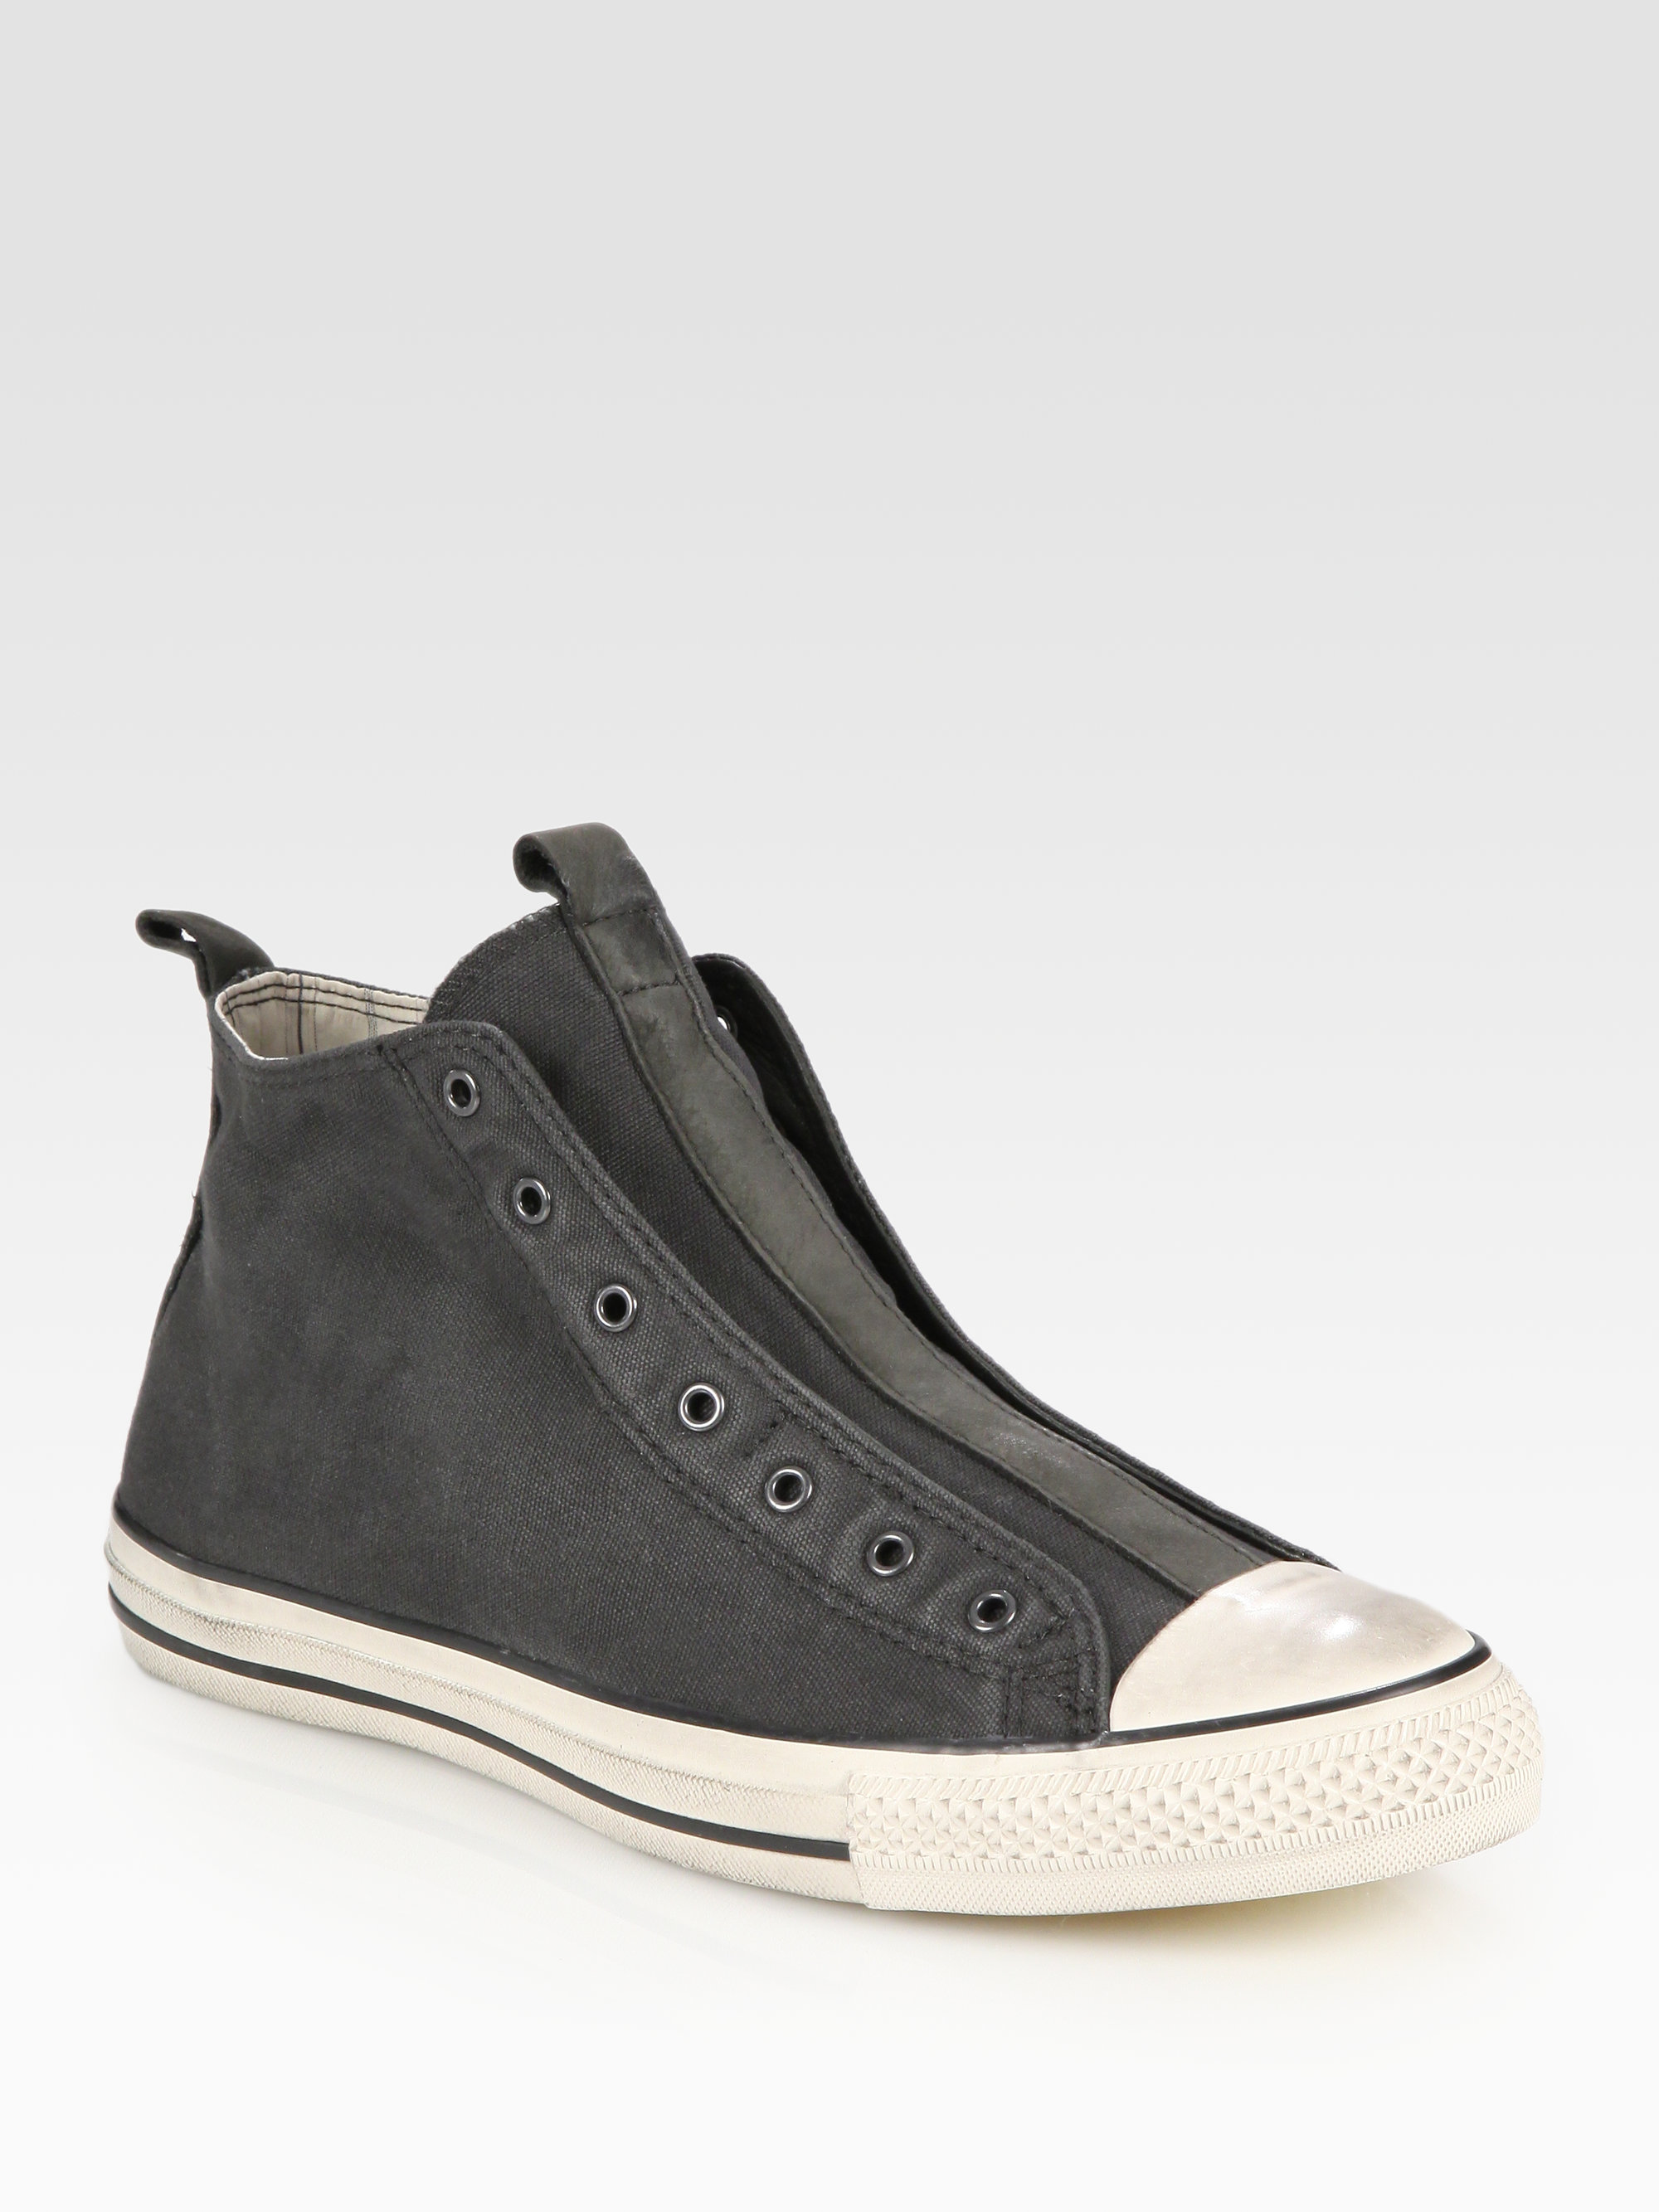 f8163c841f24 Converse John Varvatos Laceless Canvas Hightop Sneakers in Gray for Men -  Lyst